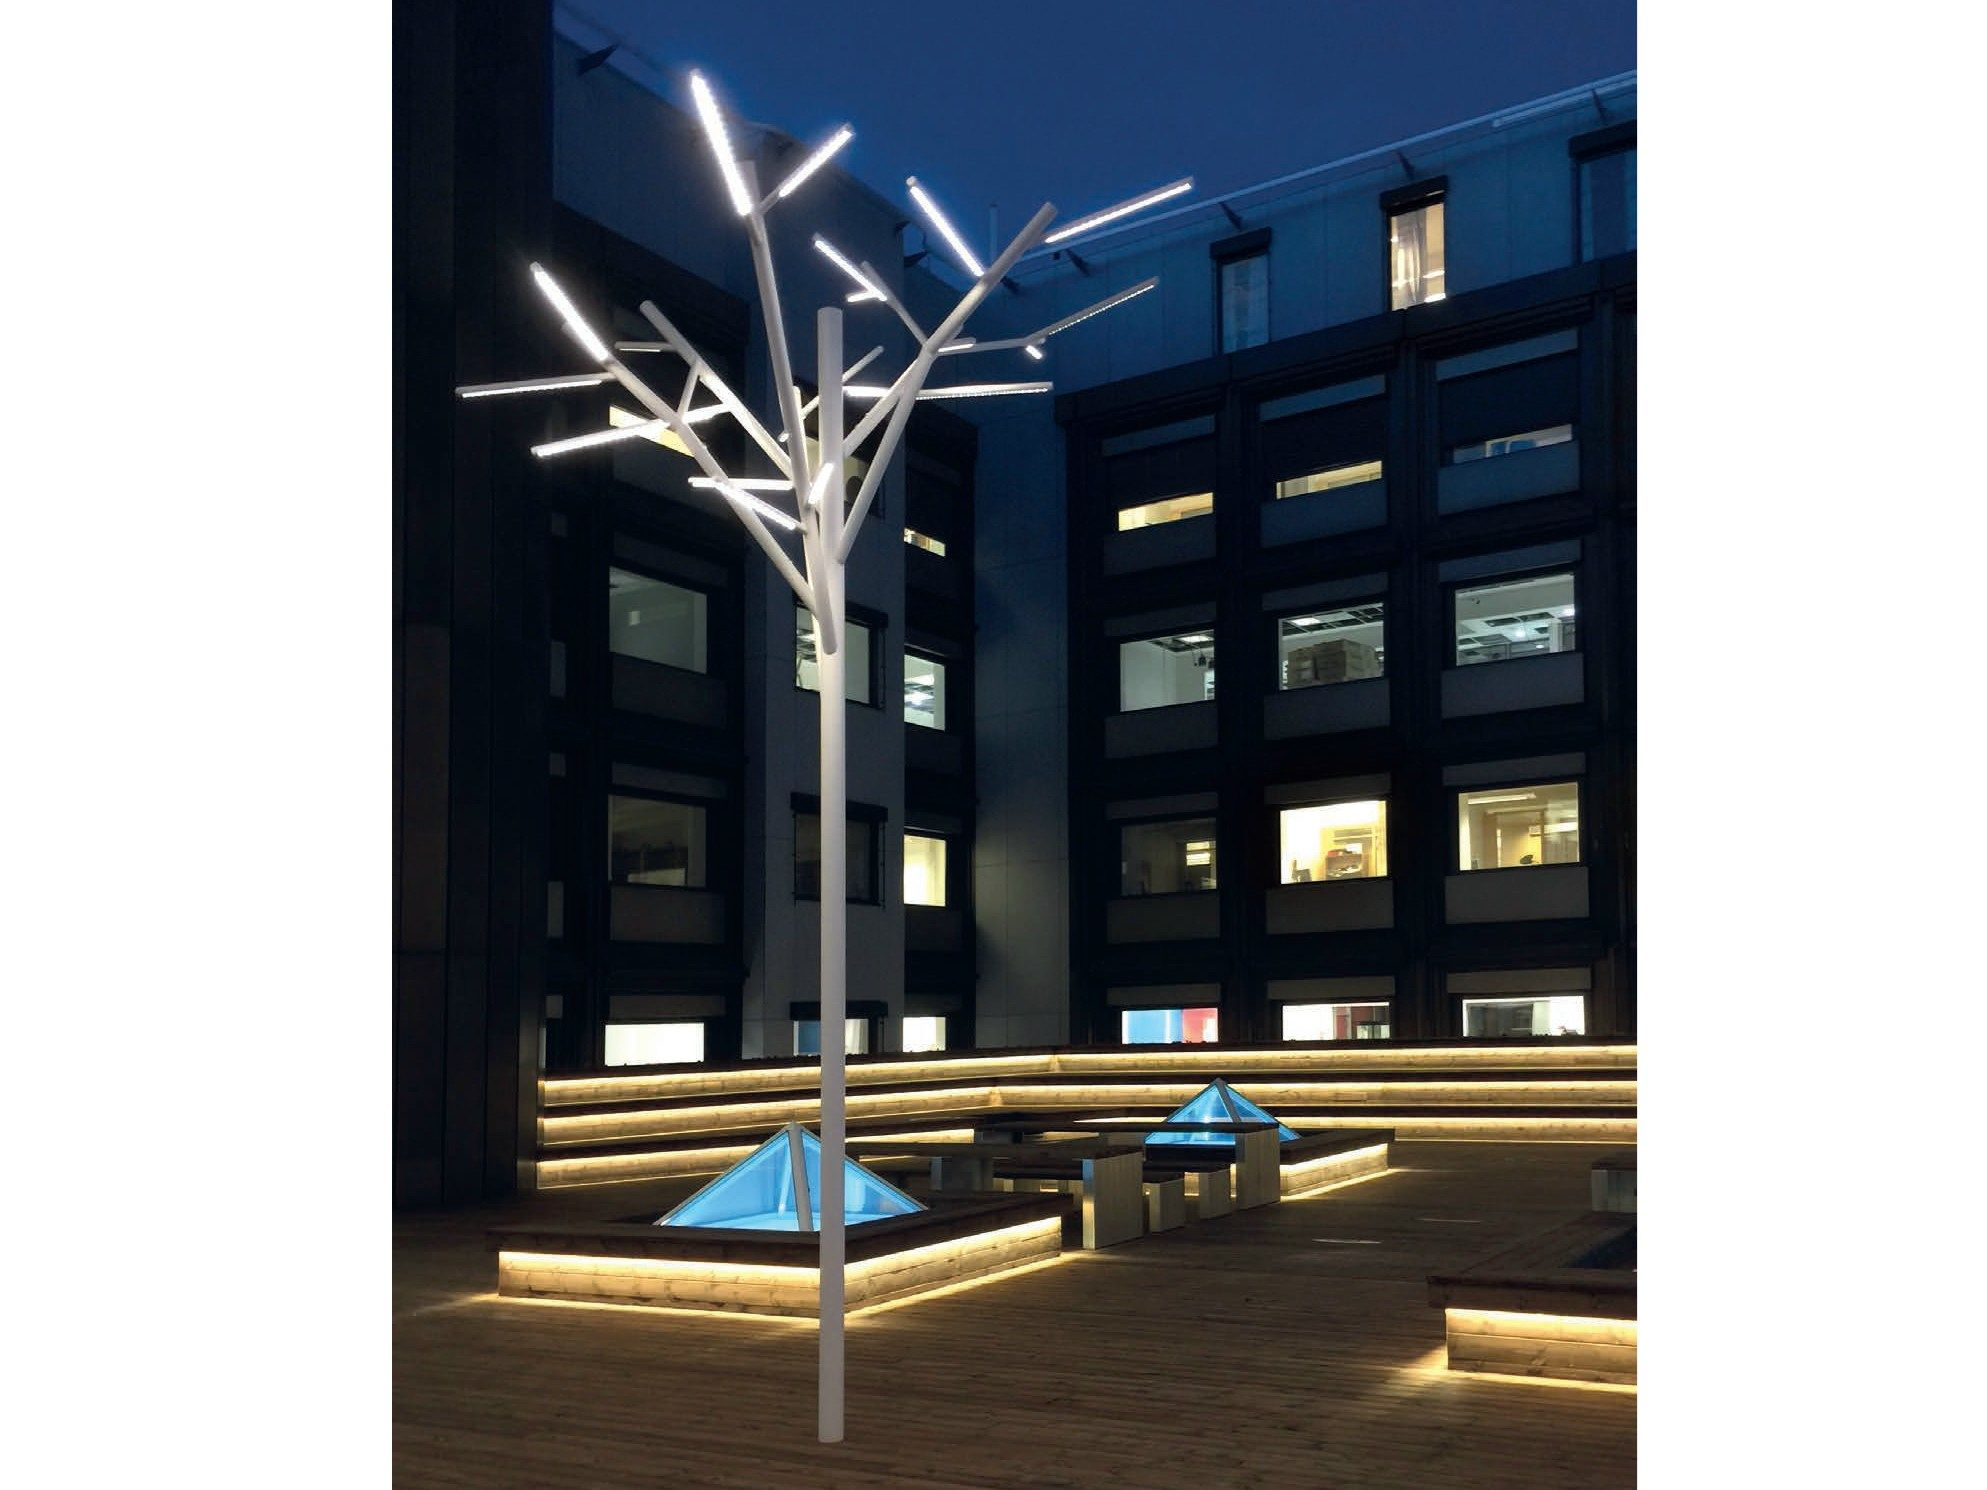 Led decorative lighting albero by iguzzini illuminazione design enzo